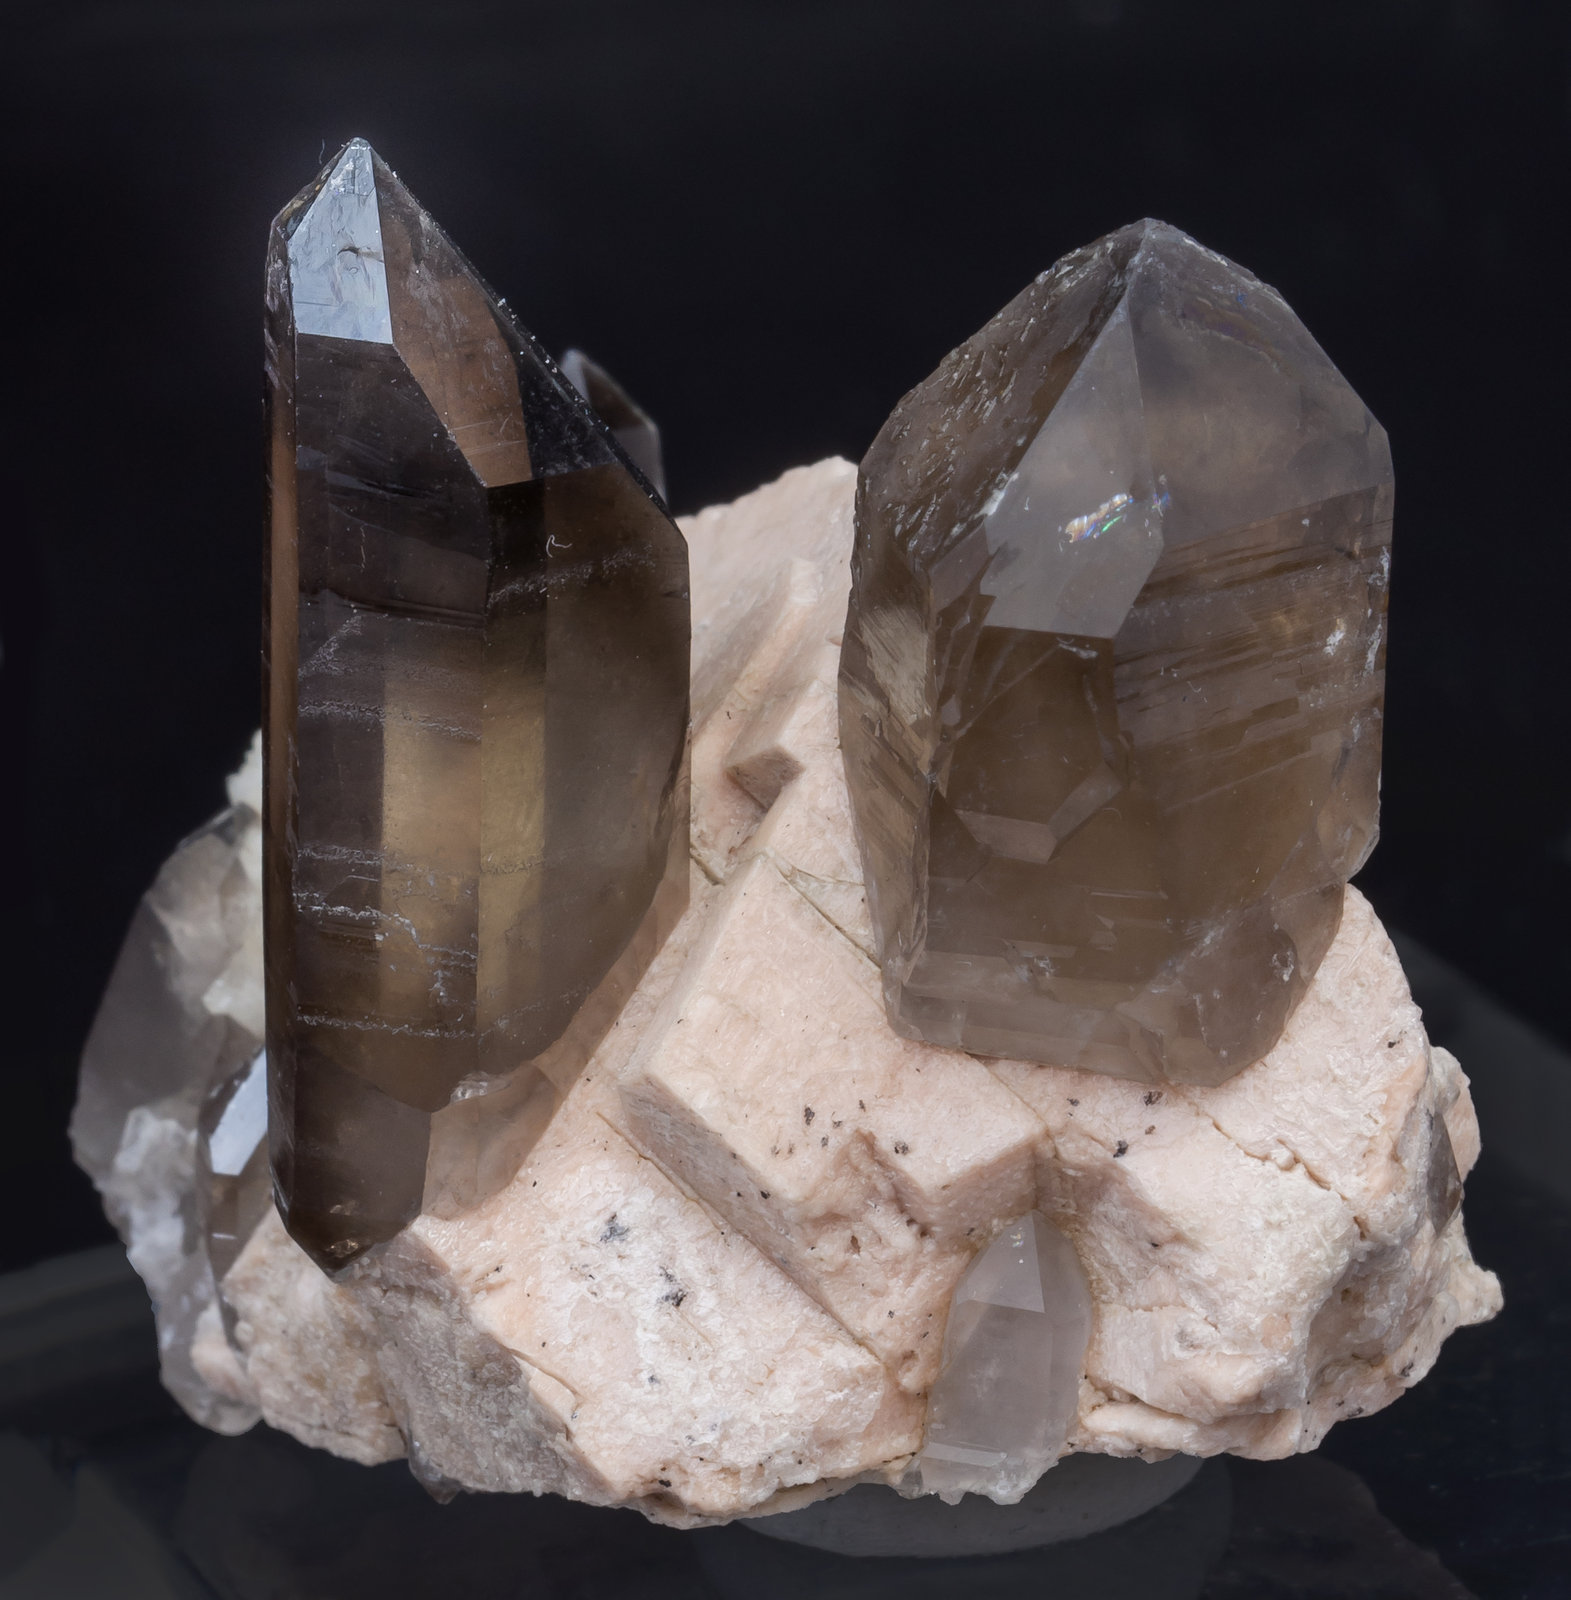 specimens/s_imagesAH6/Quartz-DF16AH6s.jpg